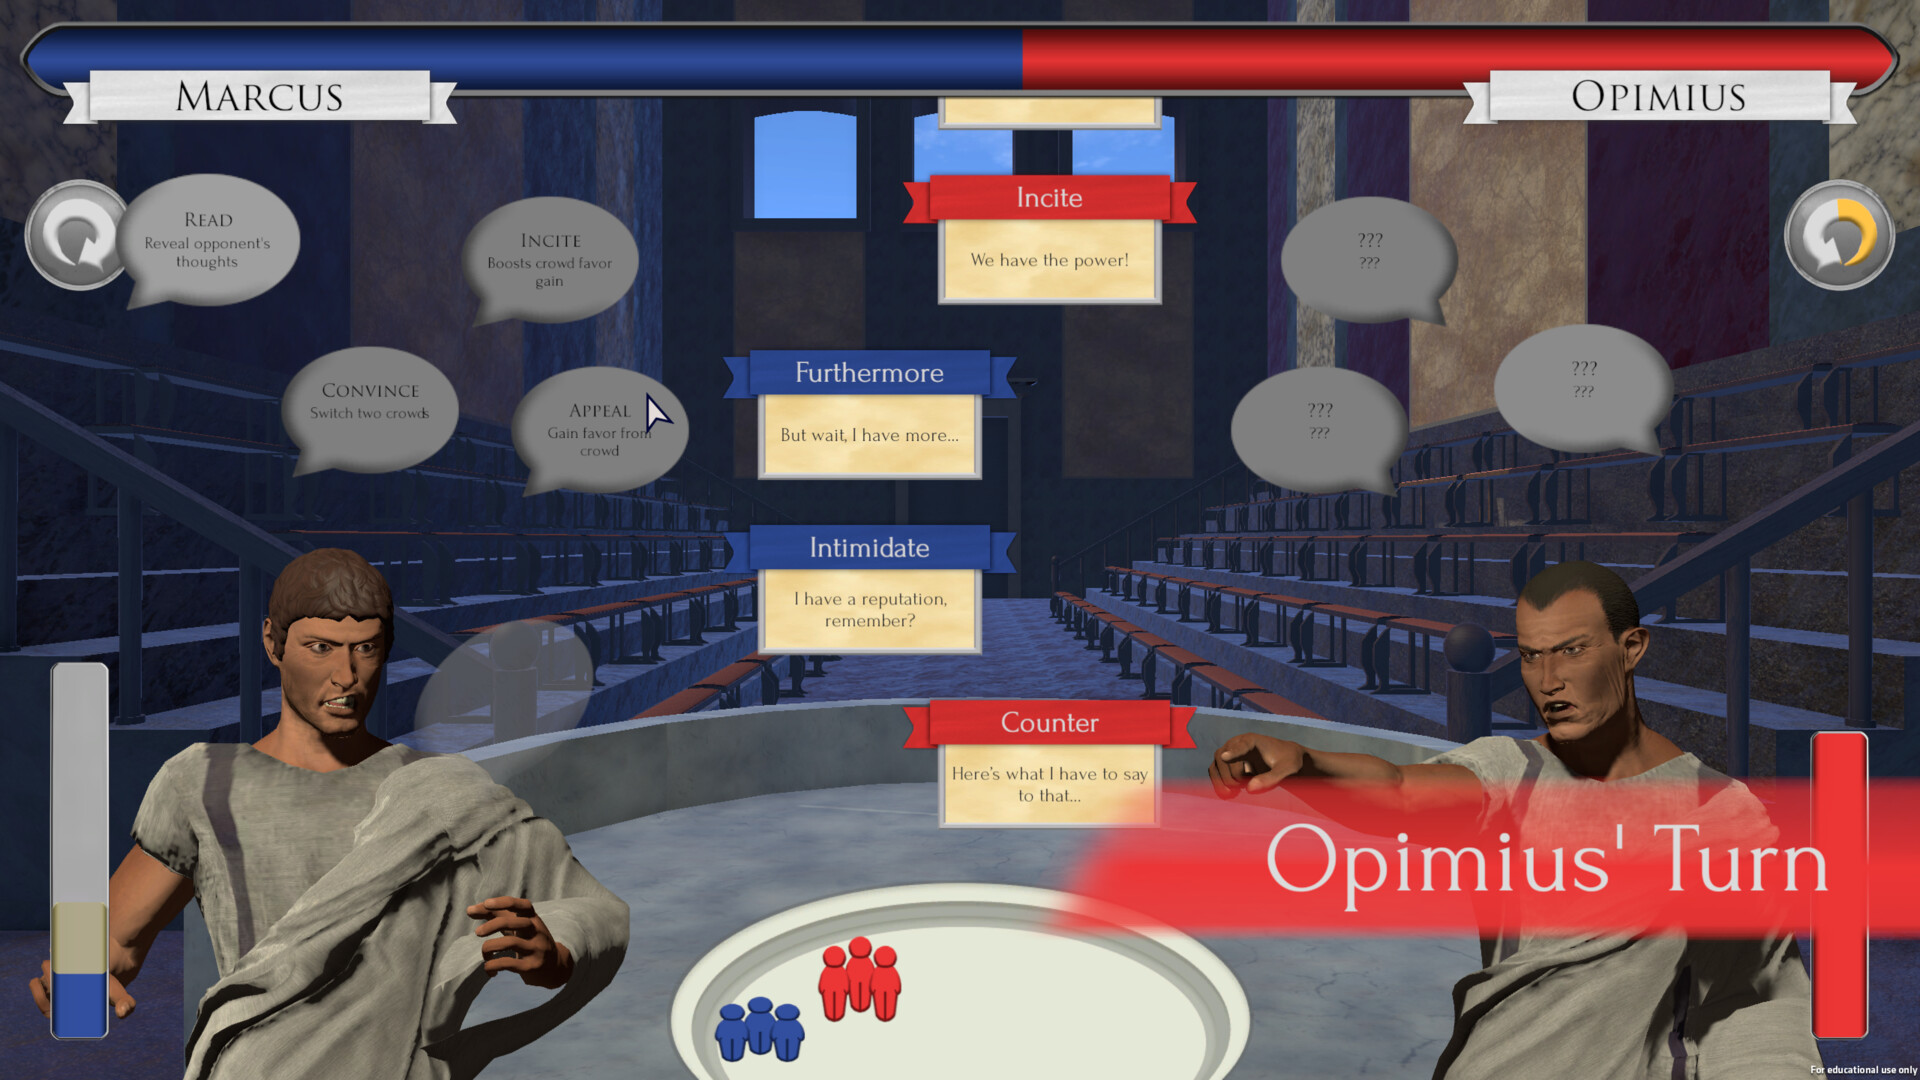 Throughout the game players are required to participate in debates with various Roman figures to engage them further with the historical and political material. This shot is an example of one of those debates, and it's UI.